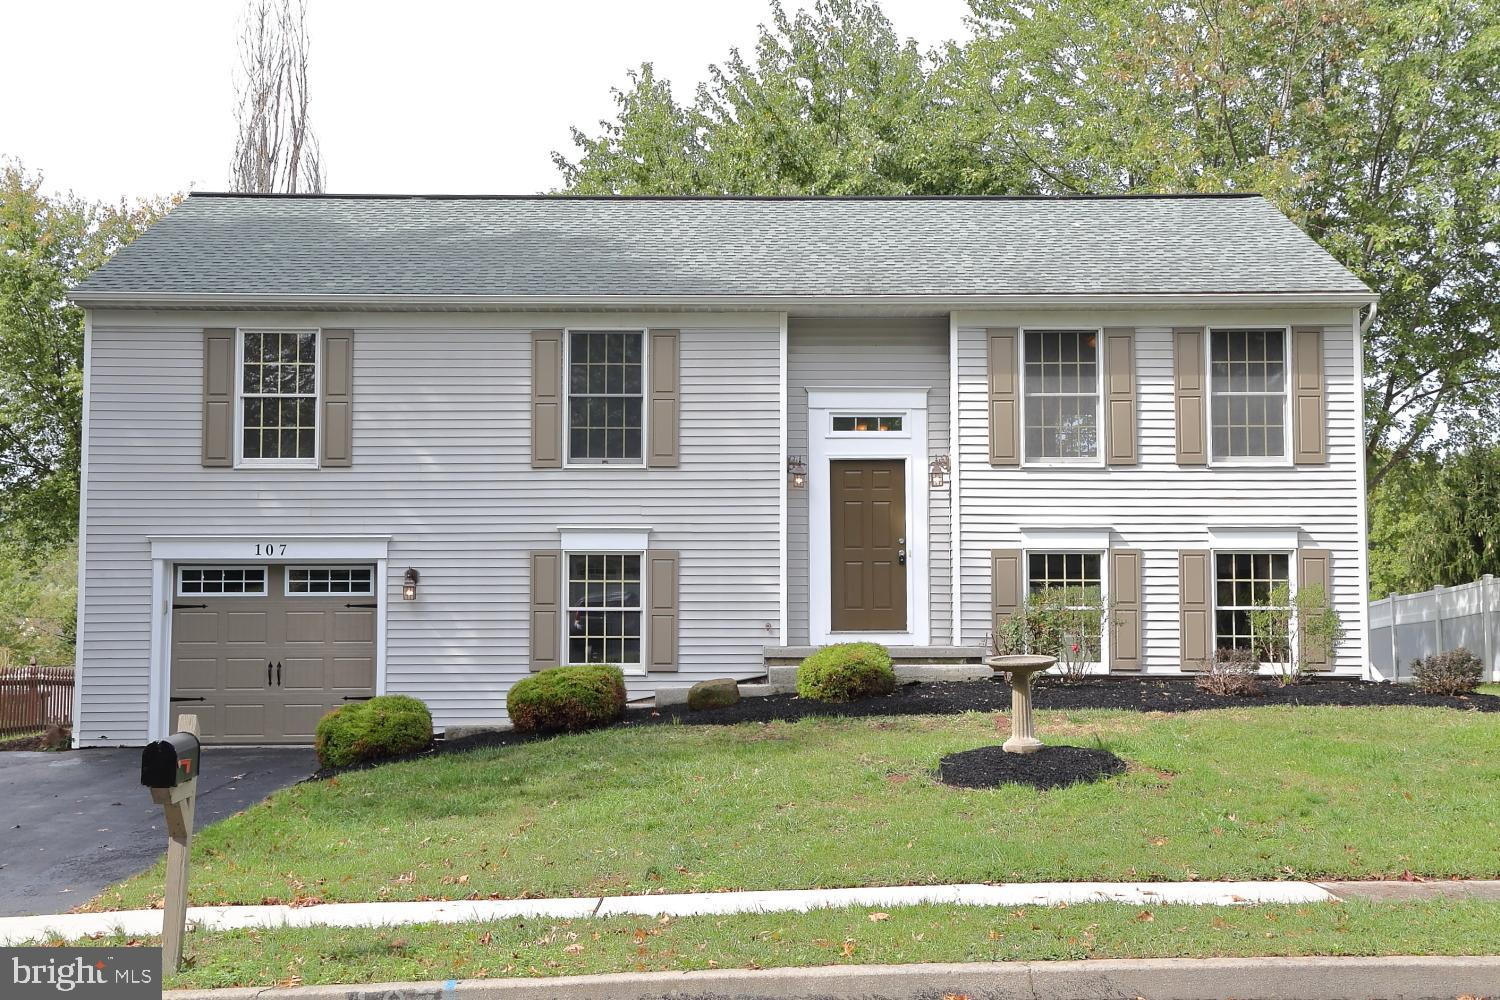 107 CATHERINE COURT, LEWISBERRY, PA 17339